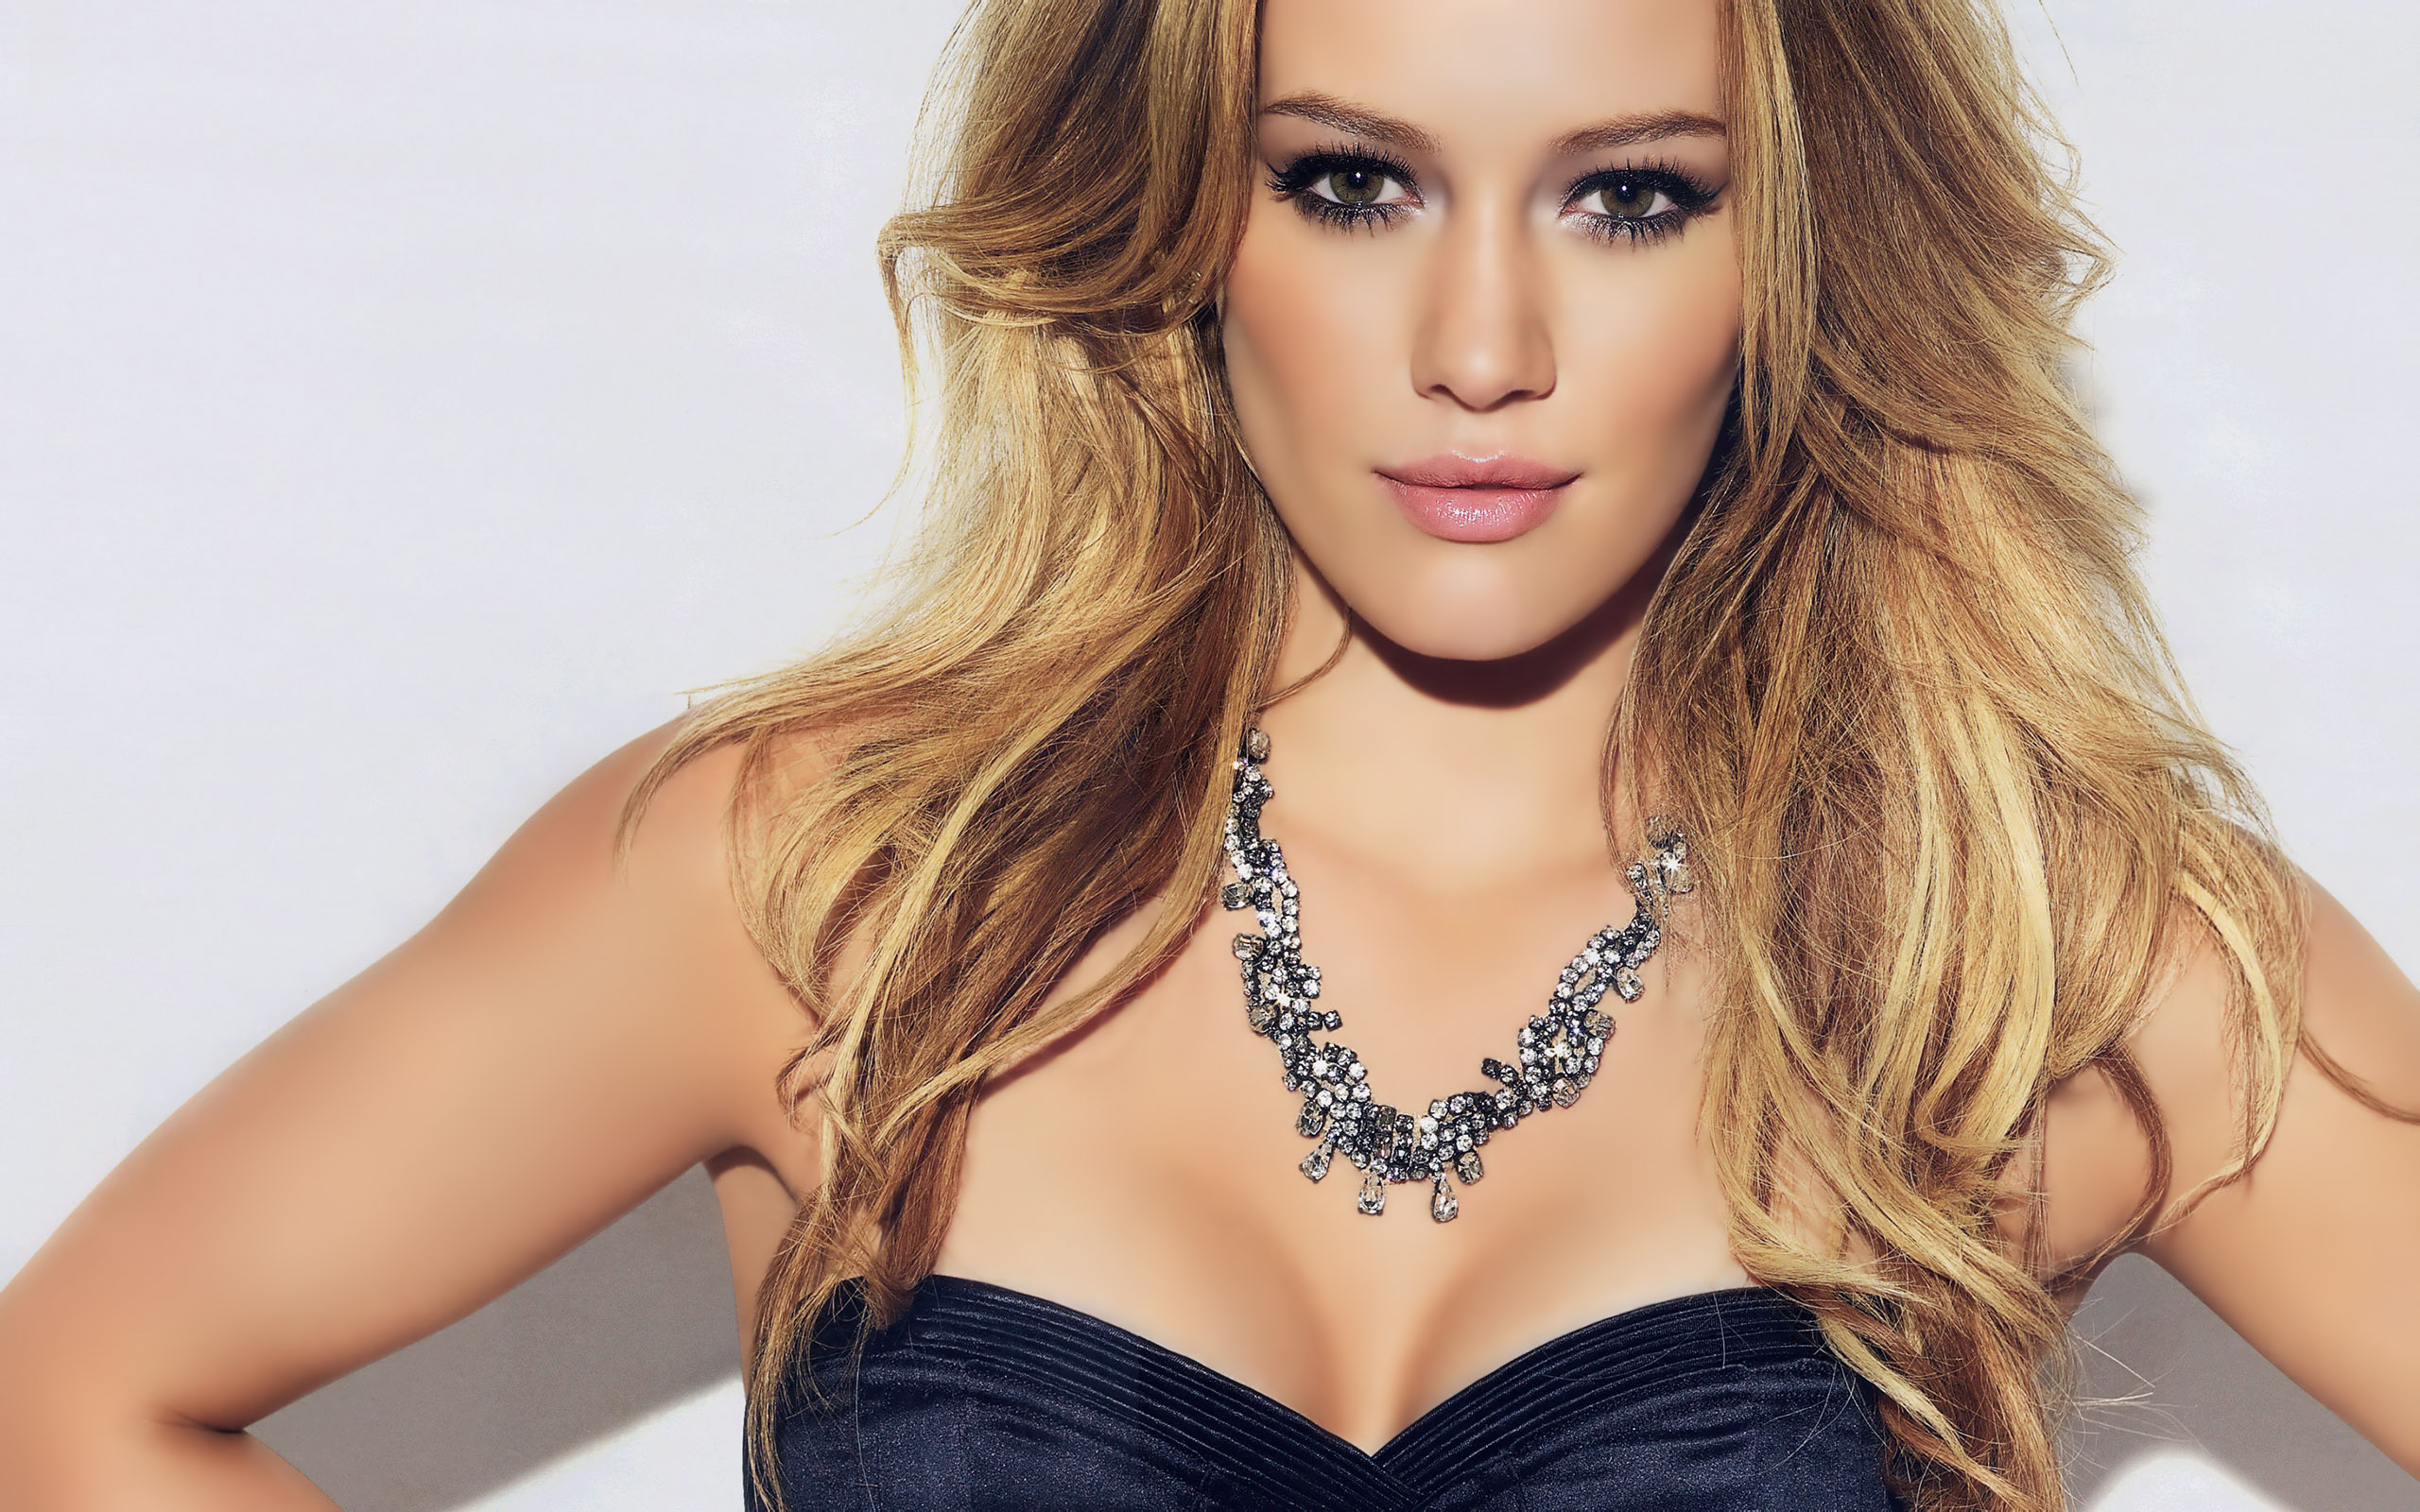 HILARY-DUFF-HD-Wallpapers-2